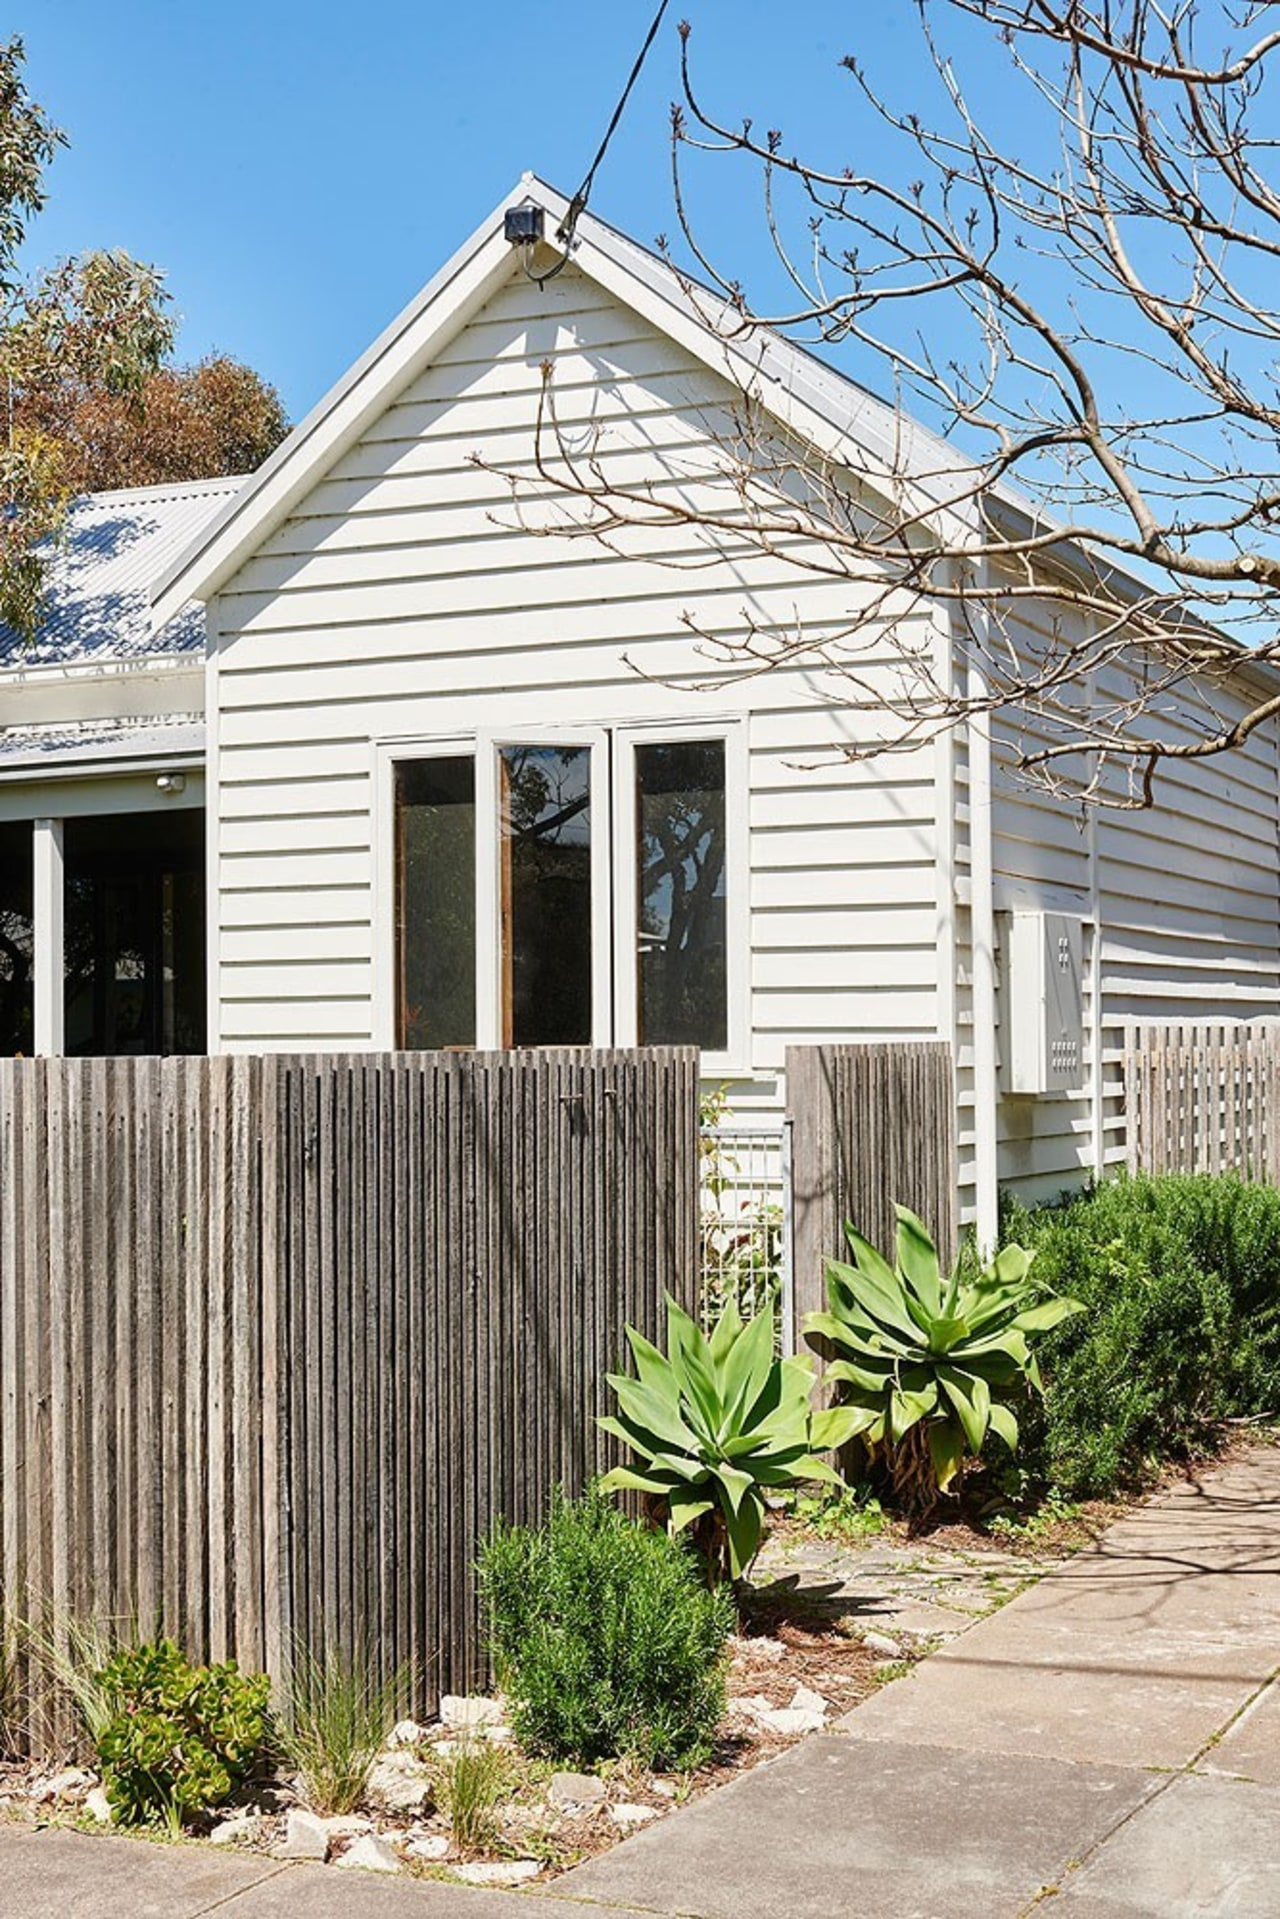 Architect: Kim Irons Photography by Nikole Ramsay cottage, facade, farmhouse, home, house, neighbourhood, outdoor structure, picket fence, property, real estate, residential area, shed, siding, window, yard, white